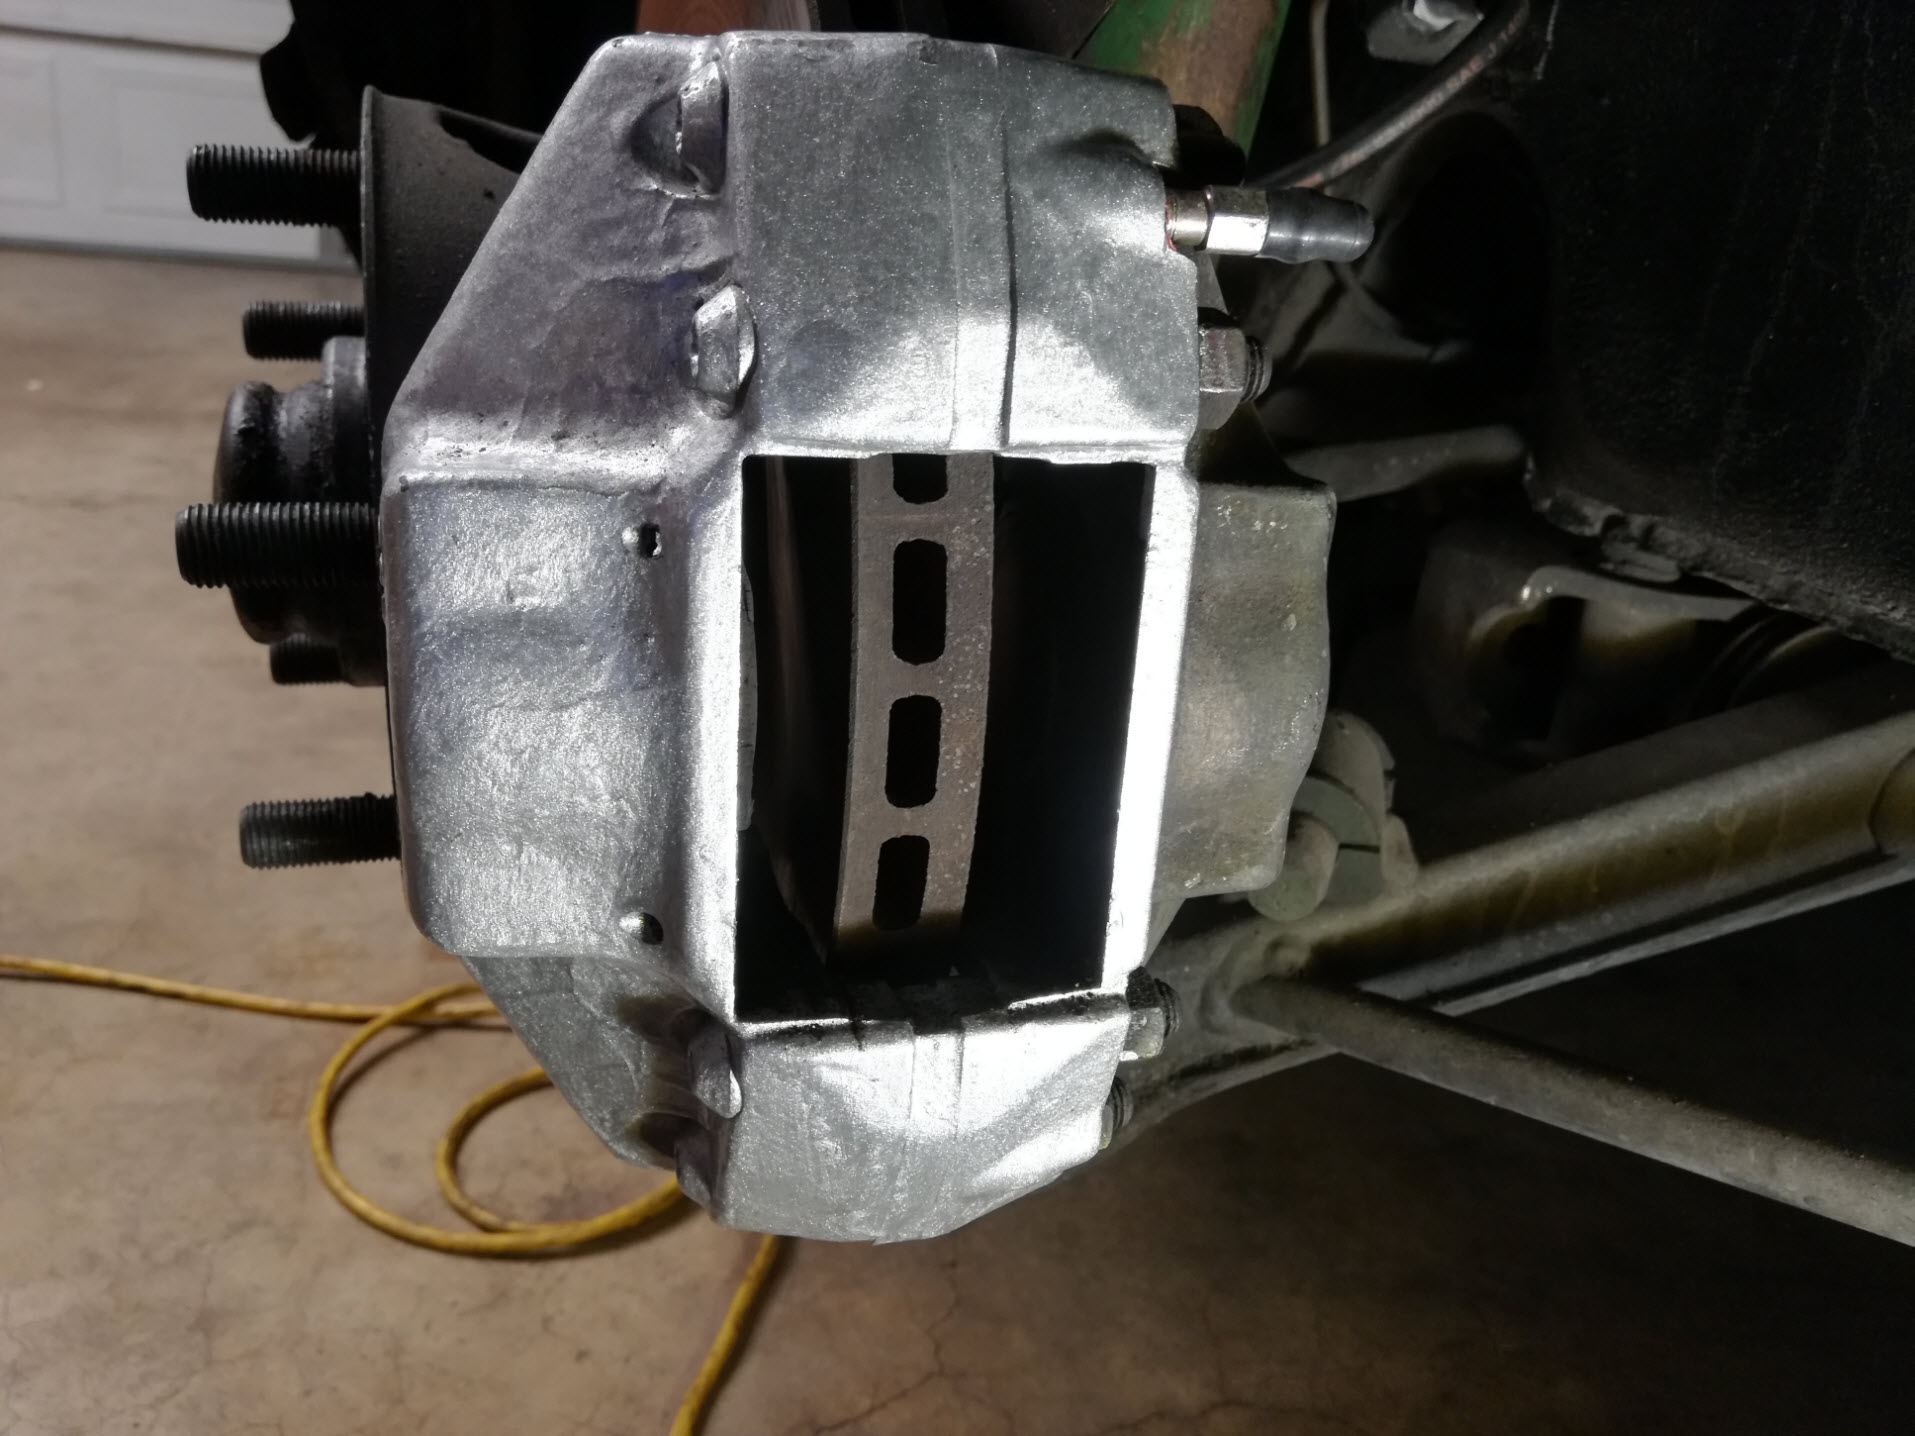 Air-cooled Porsche 911 brake caliper with no pads.